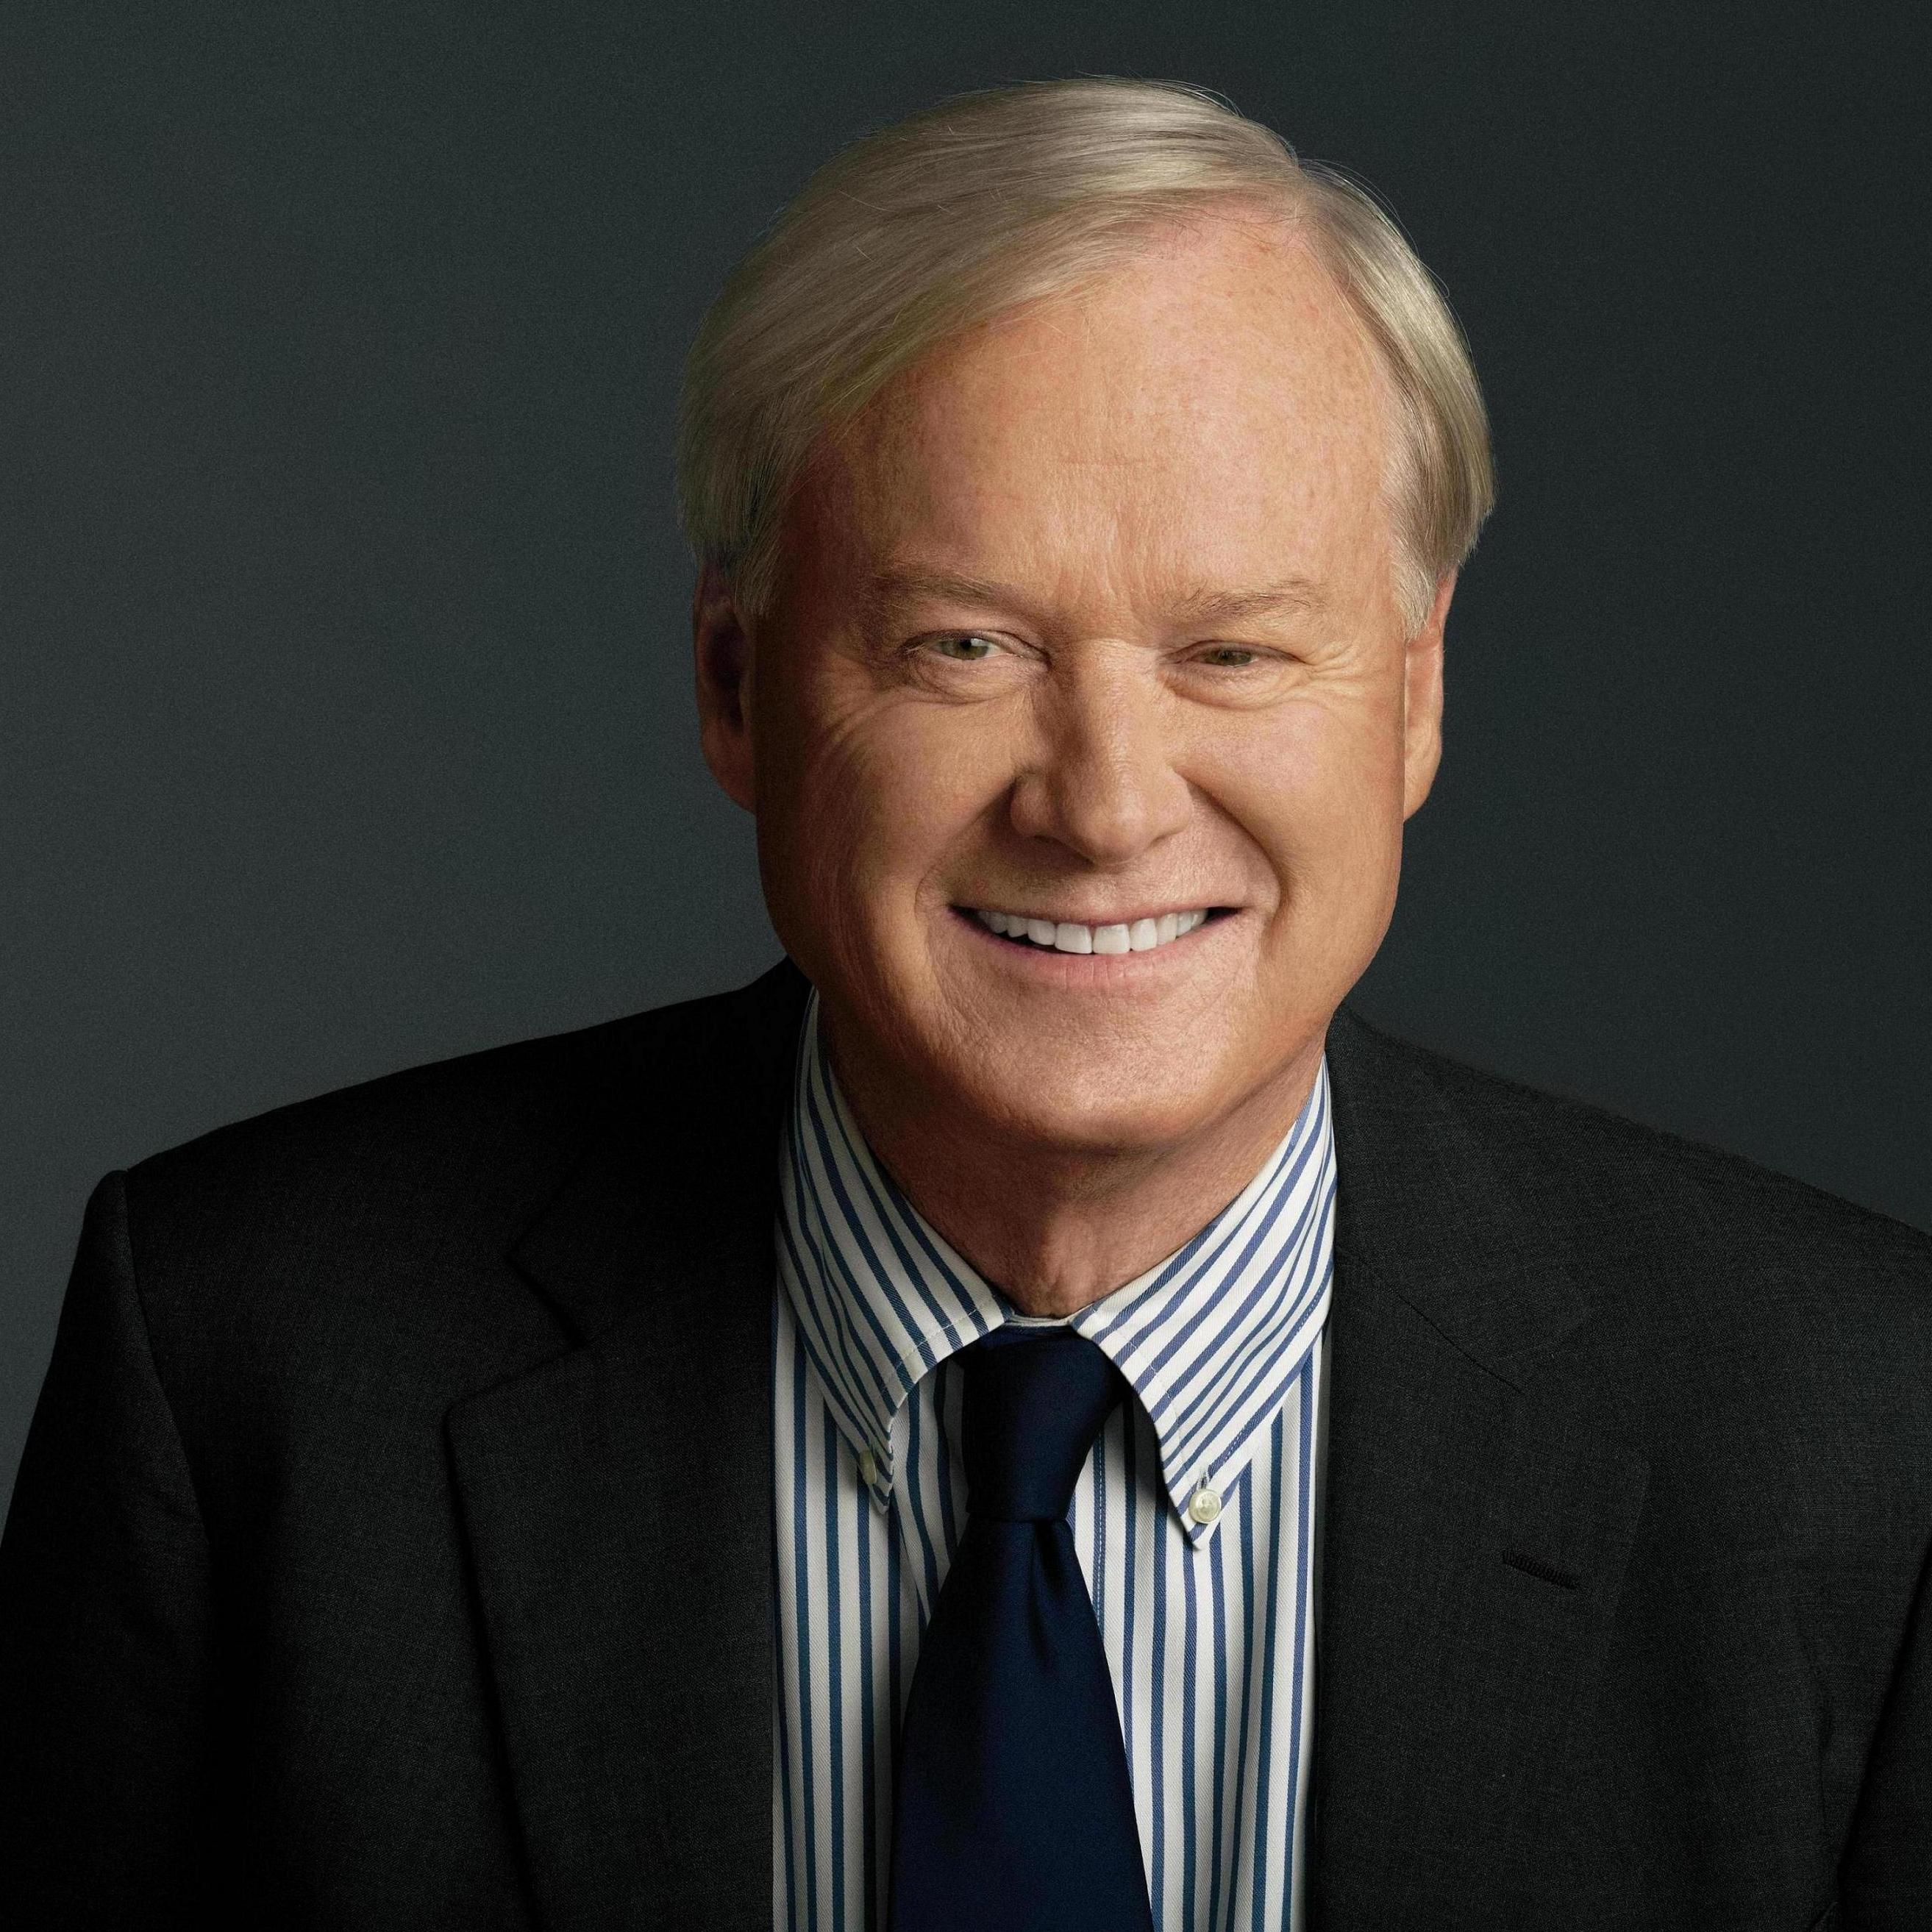 Chris Matthews first worked with Tip O'Neill in 1981 as communications director for the Democratic Congressional Campaign Committee. He later became O'Neill's administrative assistant. He is the host of the MSNBC show Hardball with Chris Matthews.